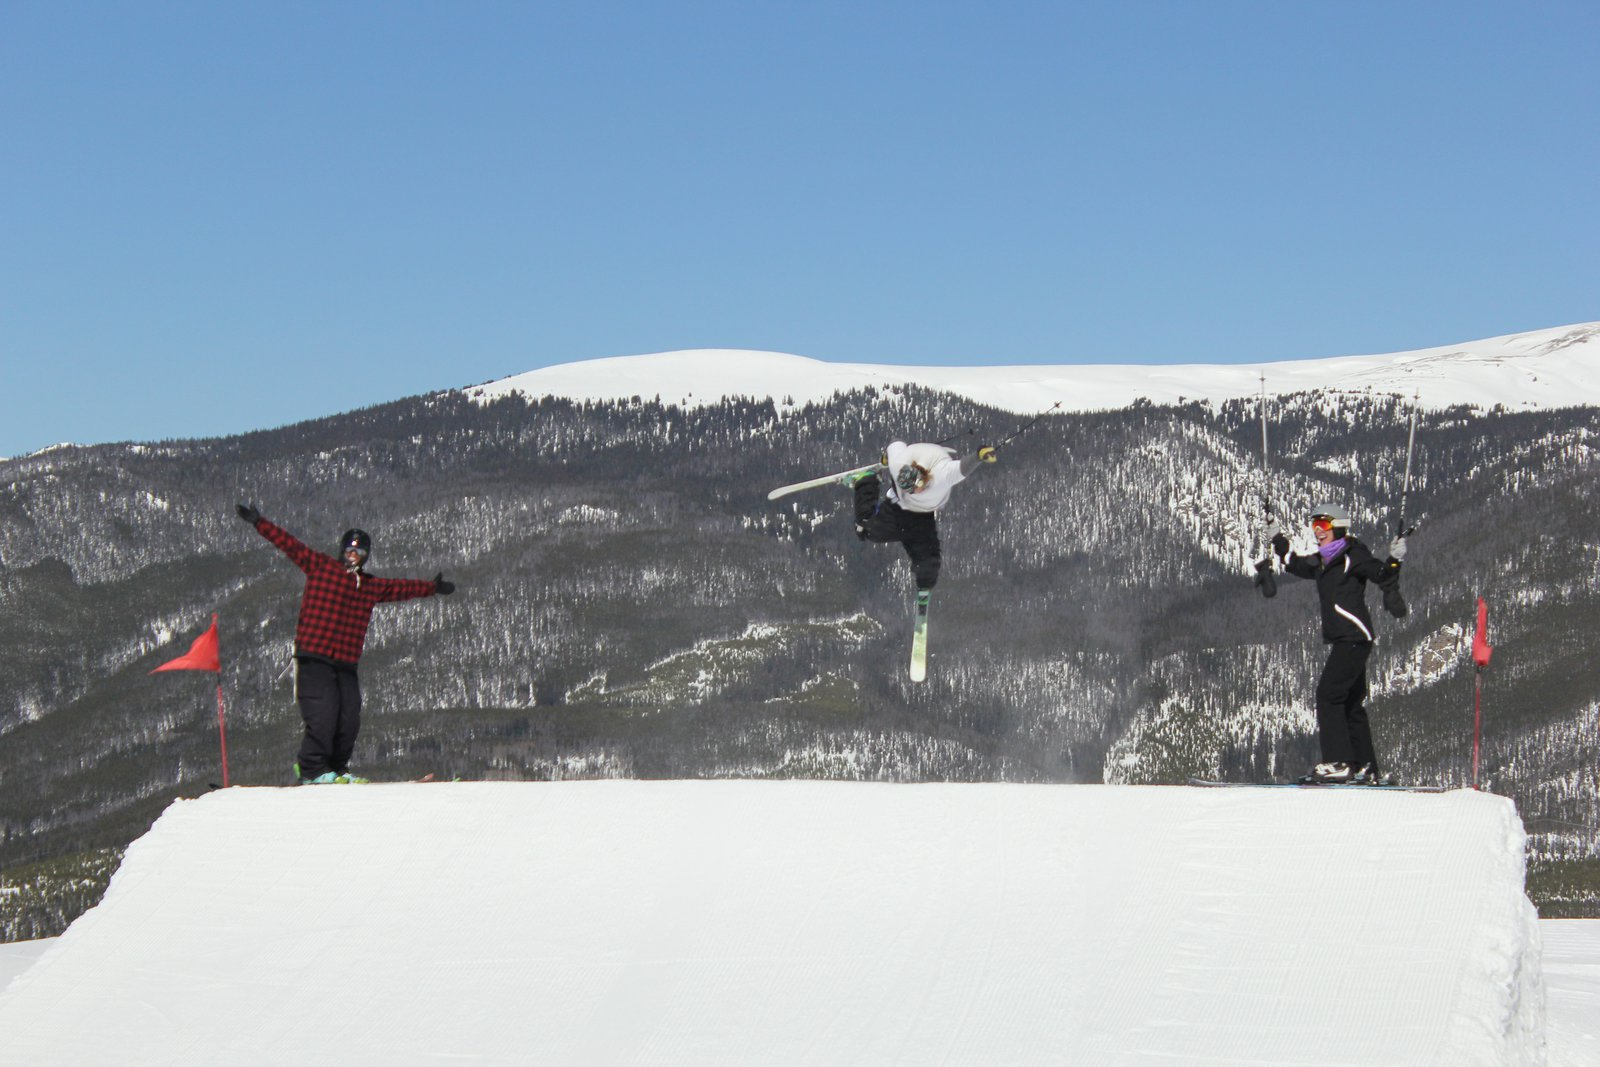 My Mom Experiences Skiing for the First Time